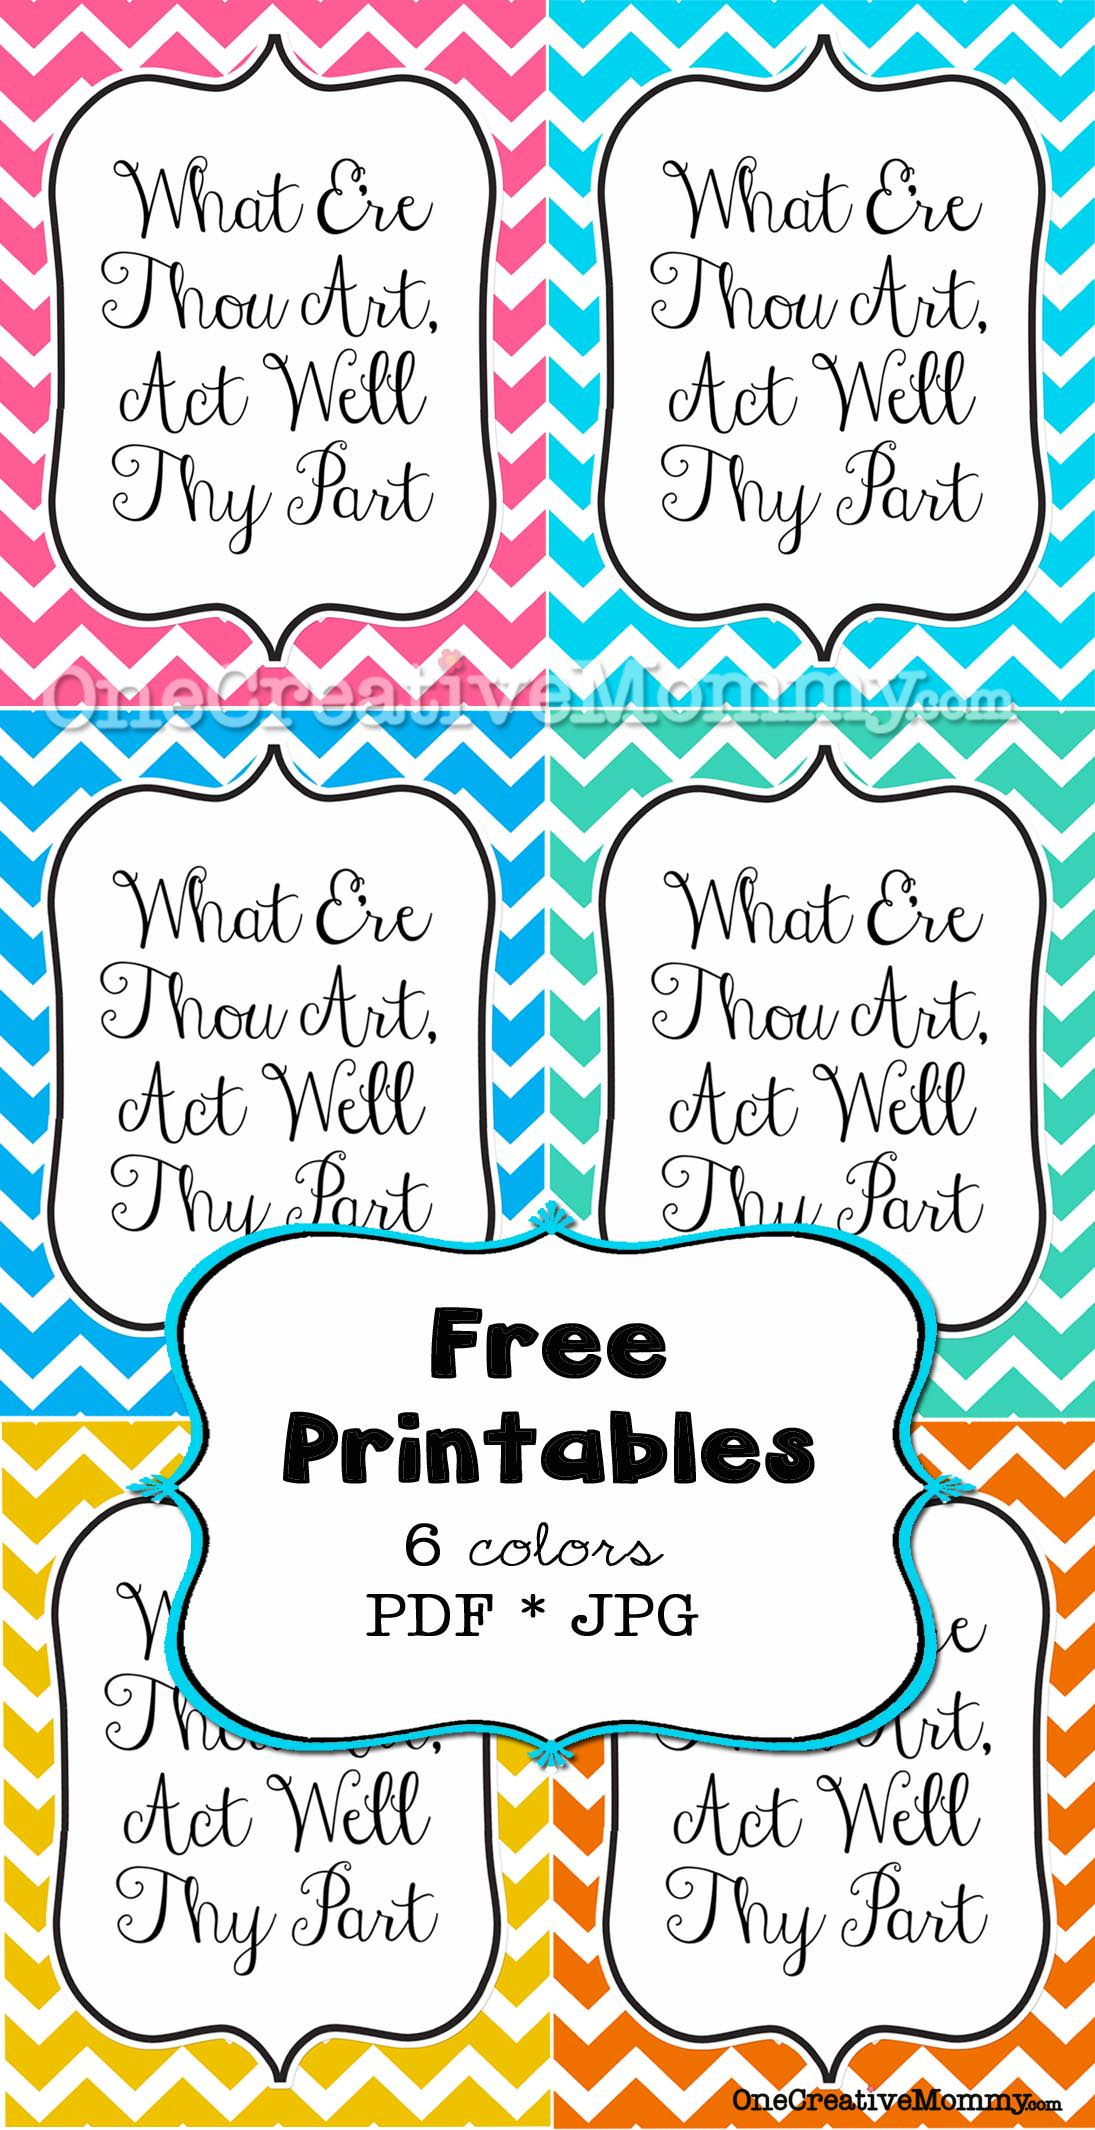 What E Re Thou Art Act Well Thy Part Free Printable